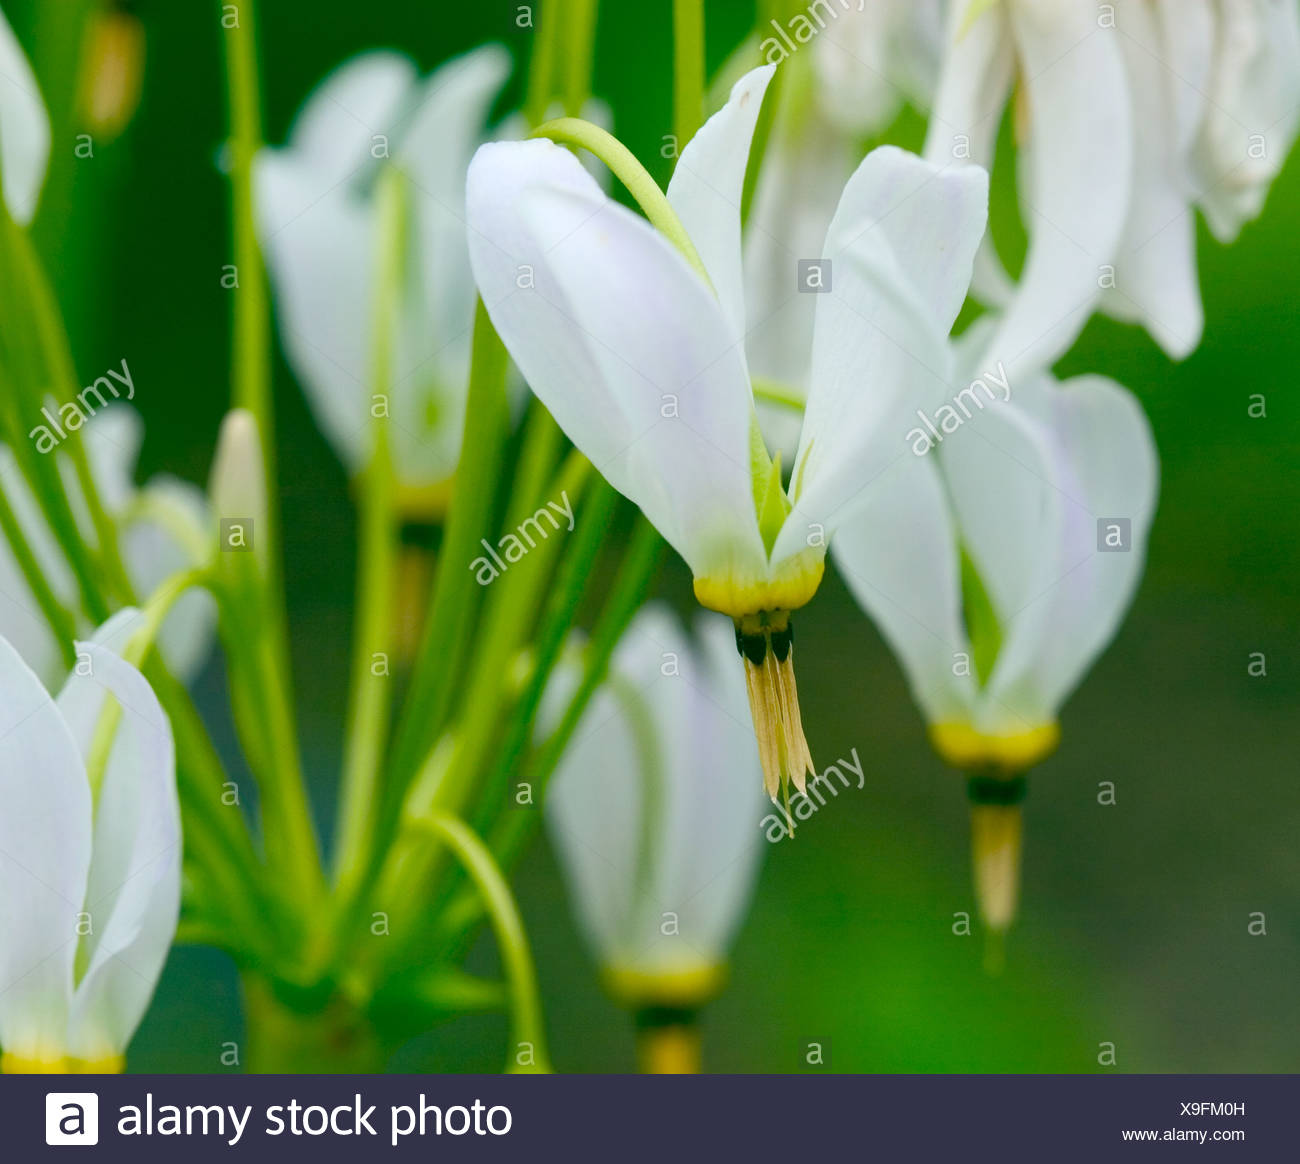 Close up shot of flowering Dodecatheon 'Dodecatheon meadia' - Stock Image